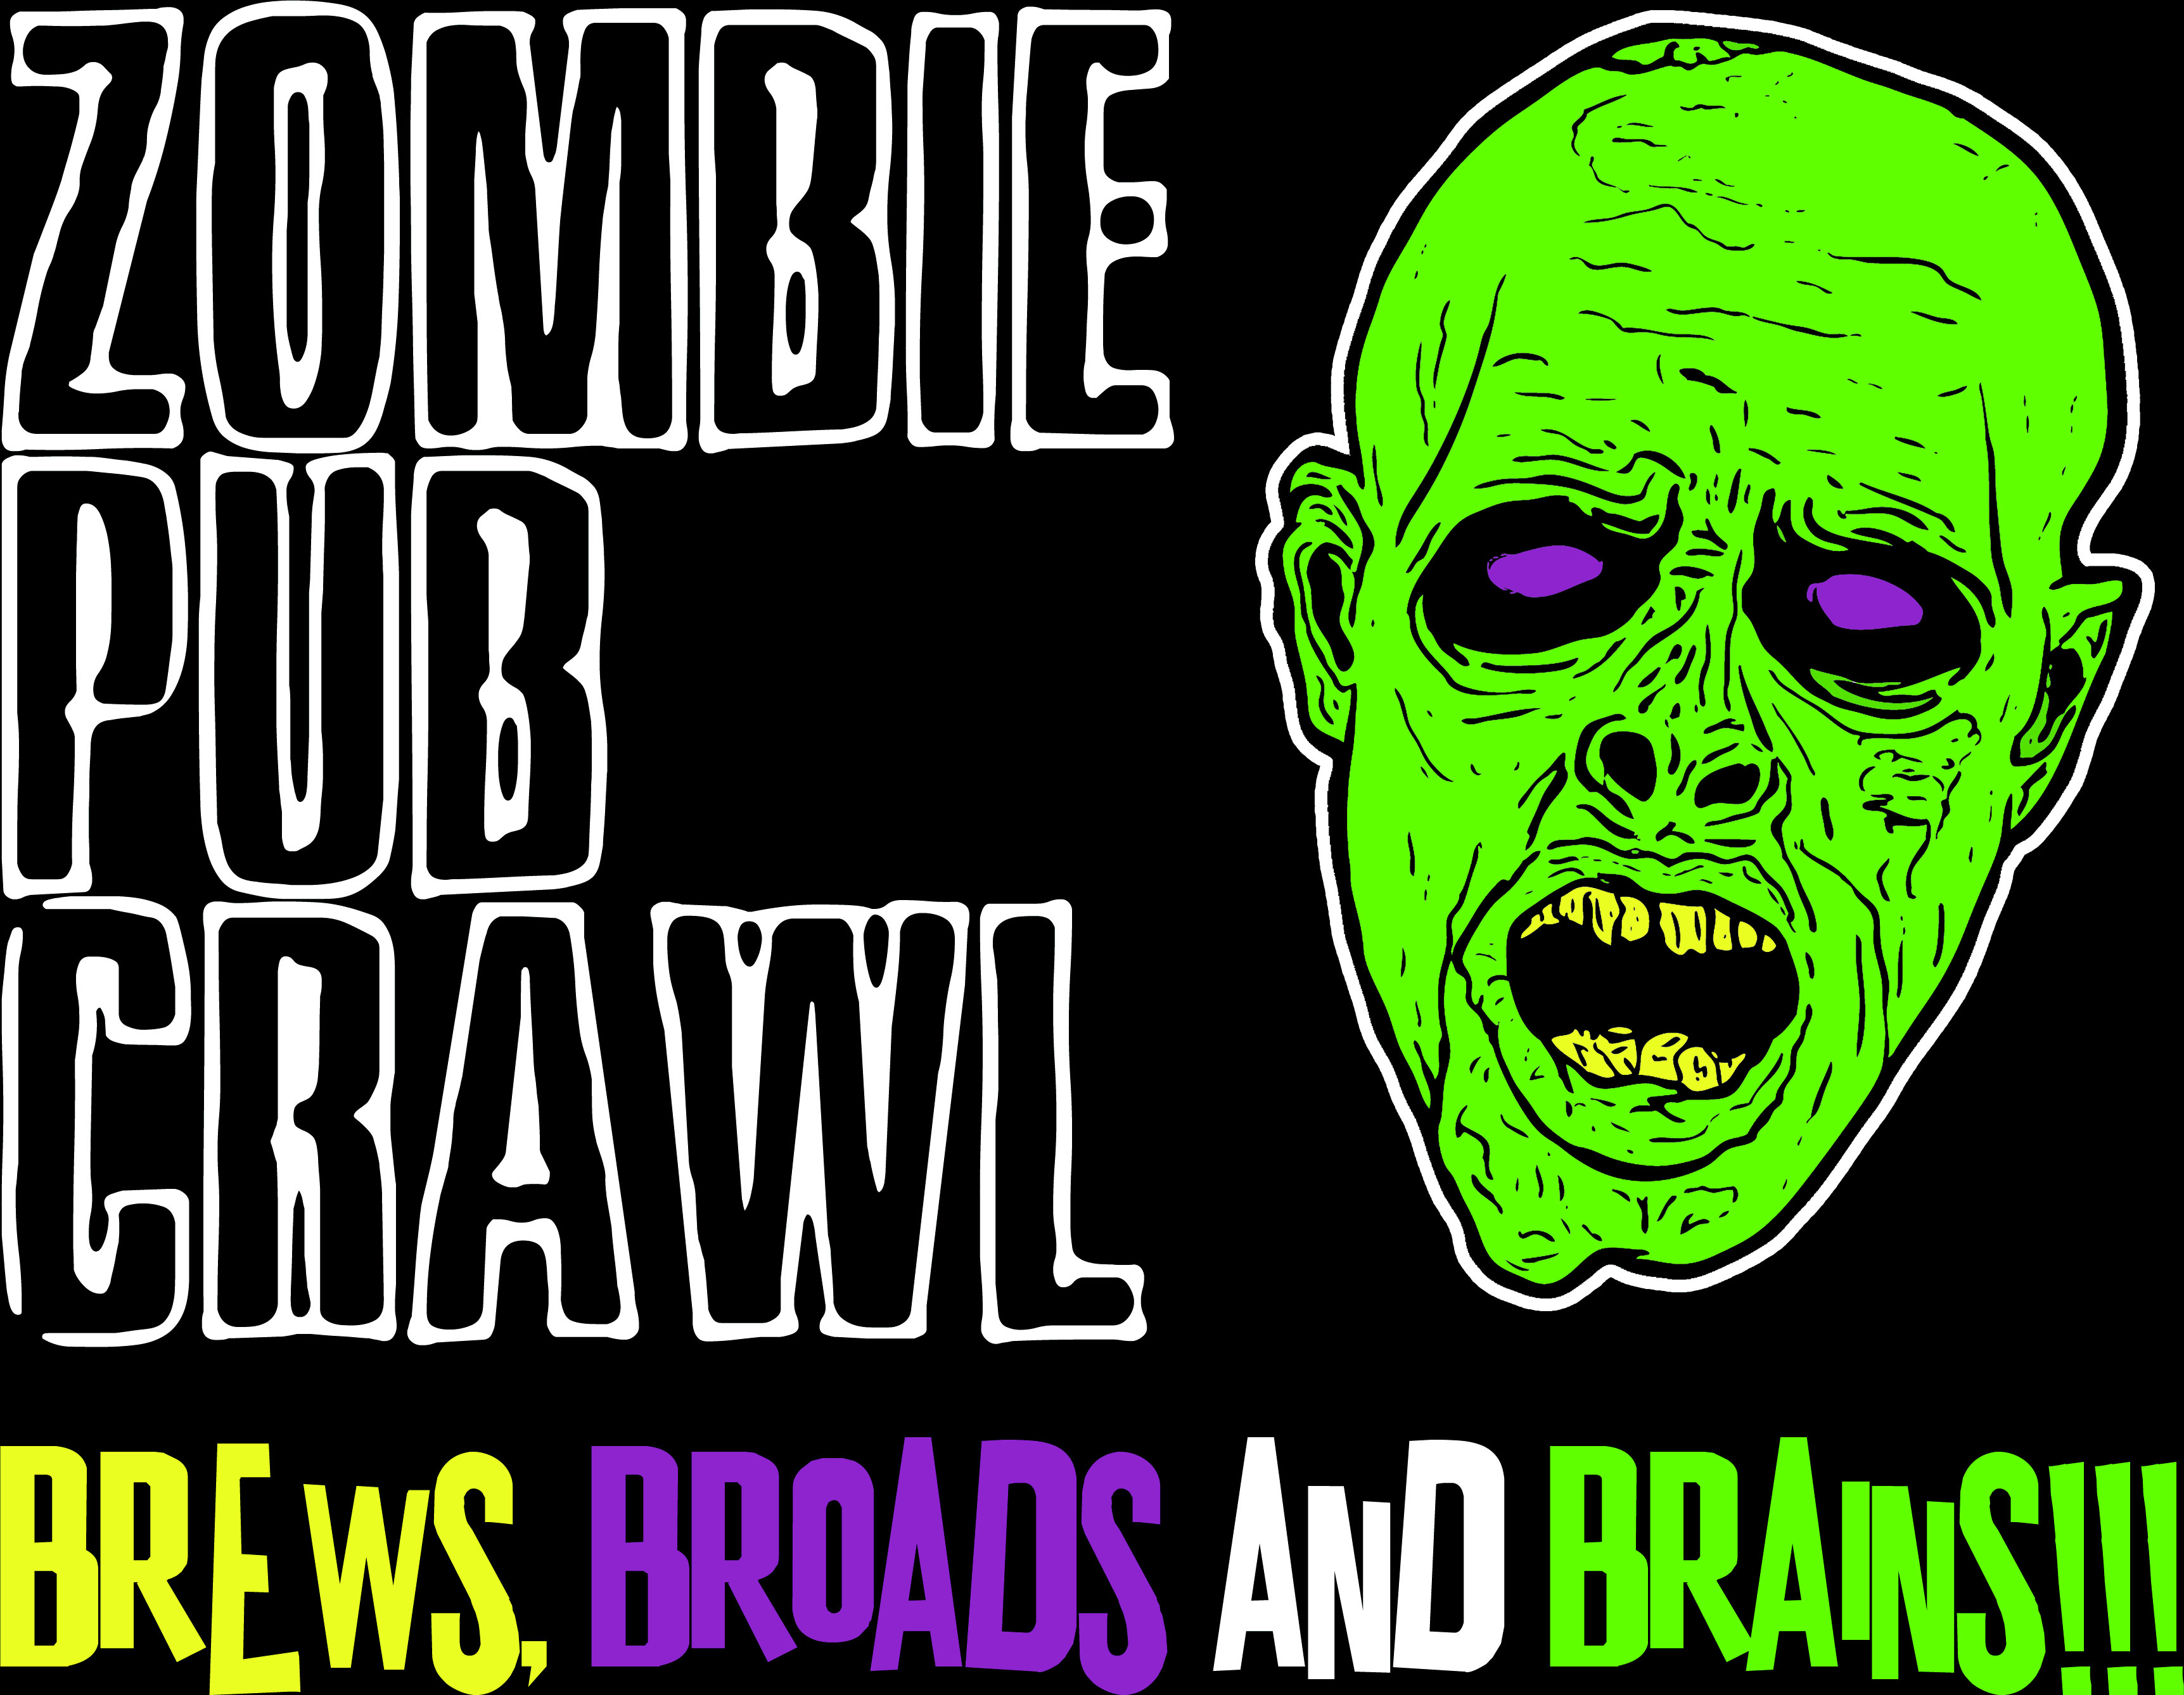 Zombie-pub-crawl_original